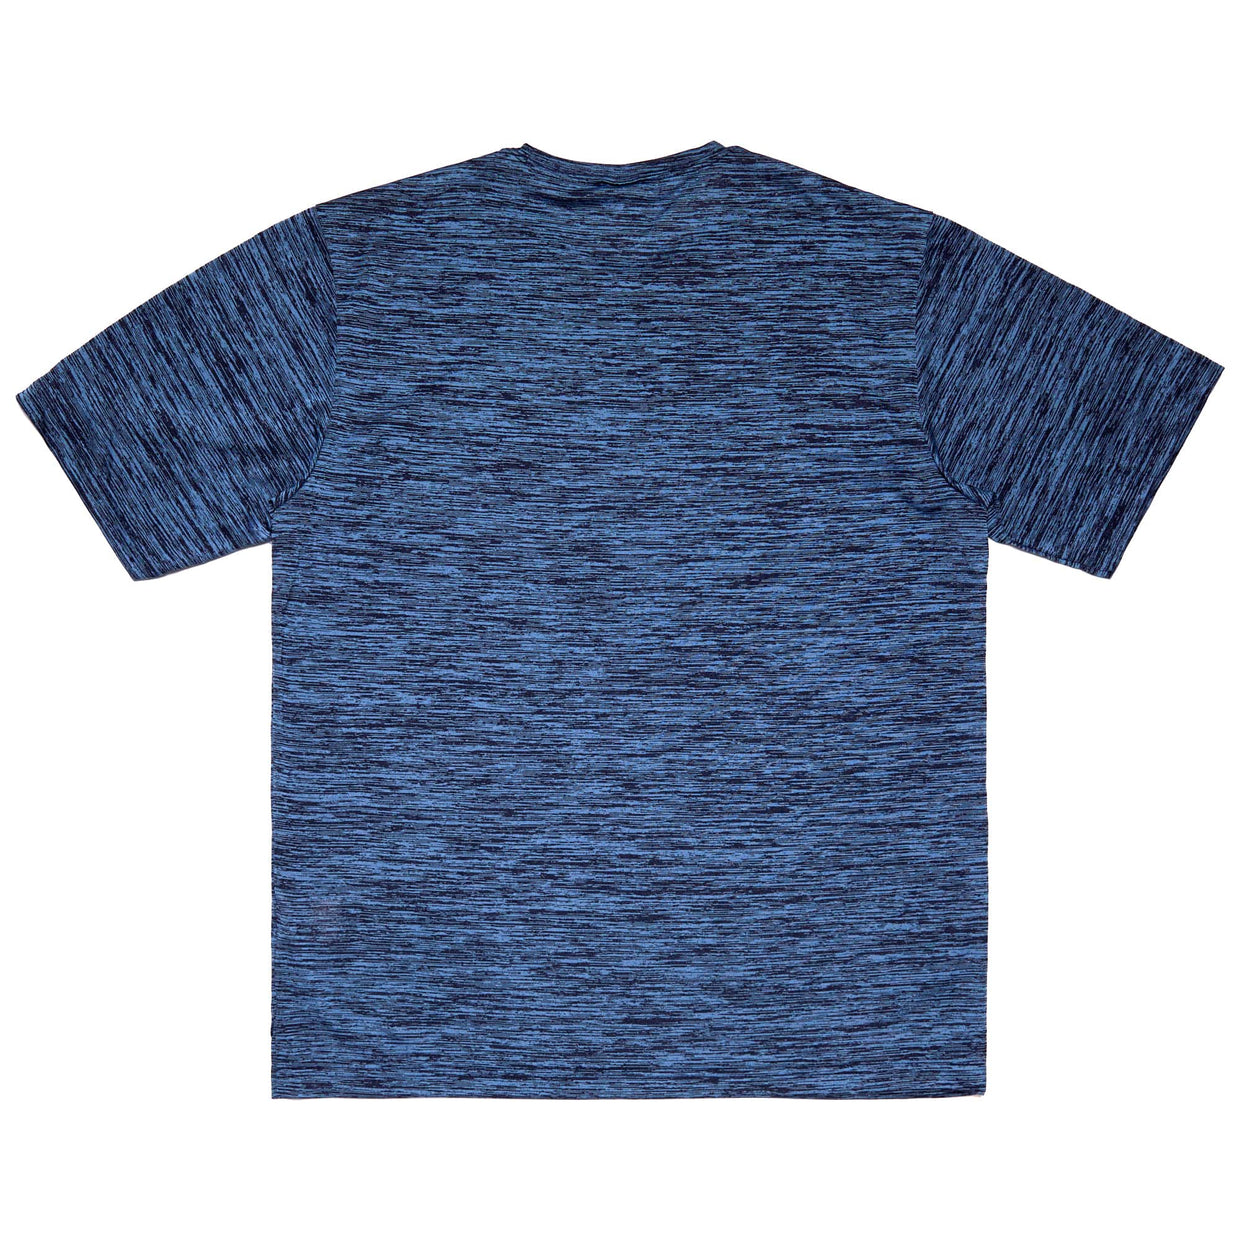 Stars and Stripes 4 Performance Tee